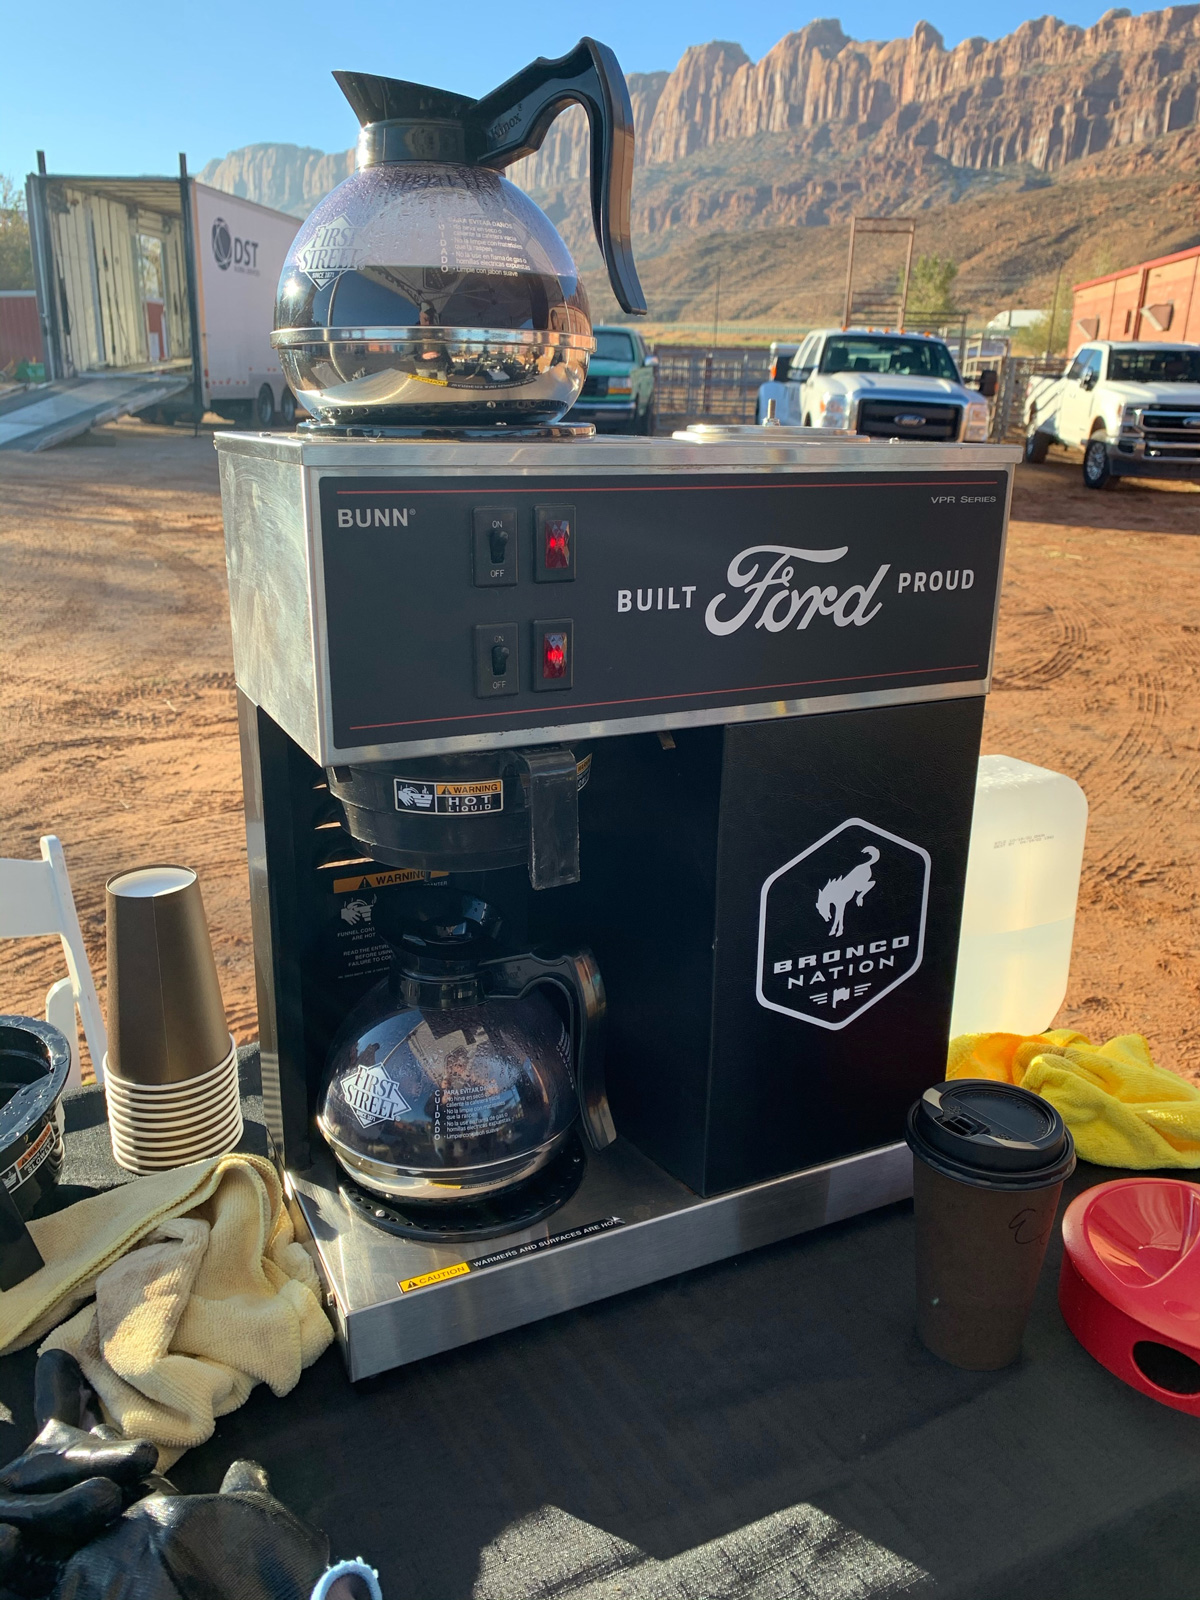 The Bronco Nation Coffee Maker is a welcome site early in the morning